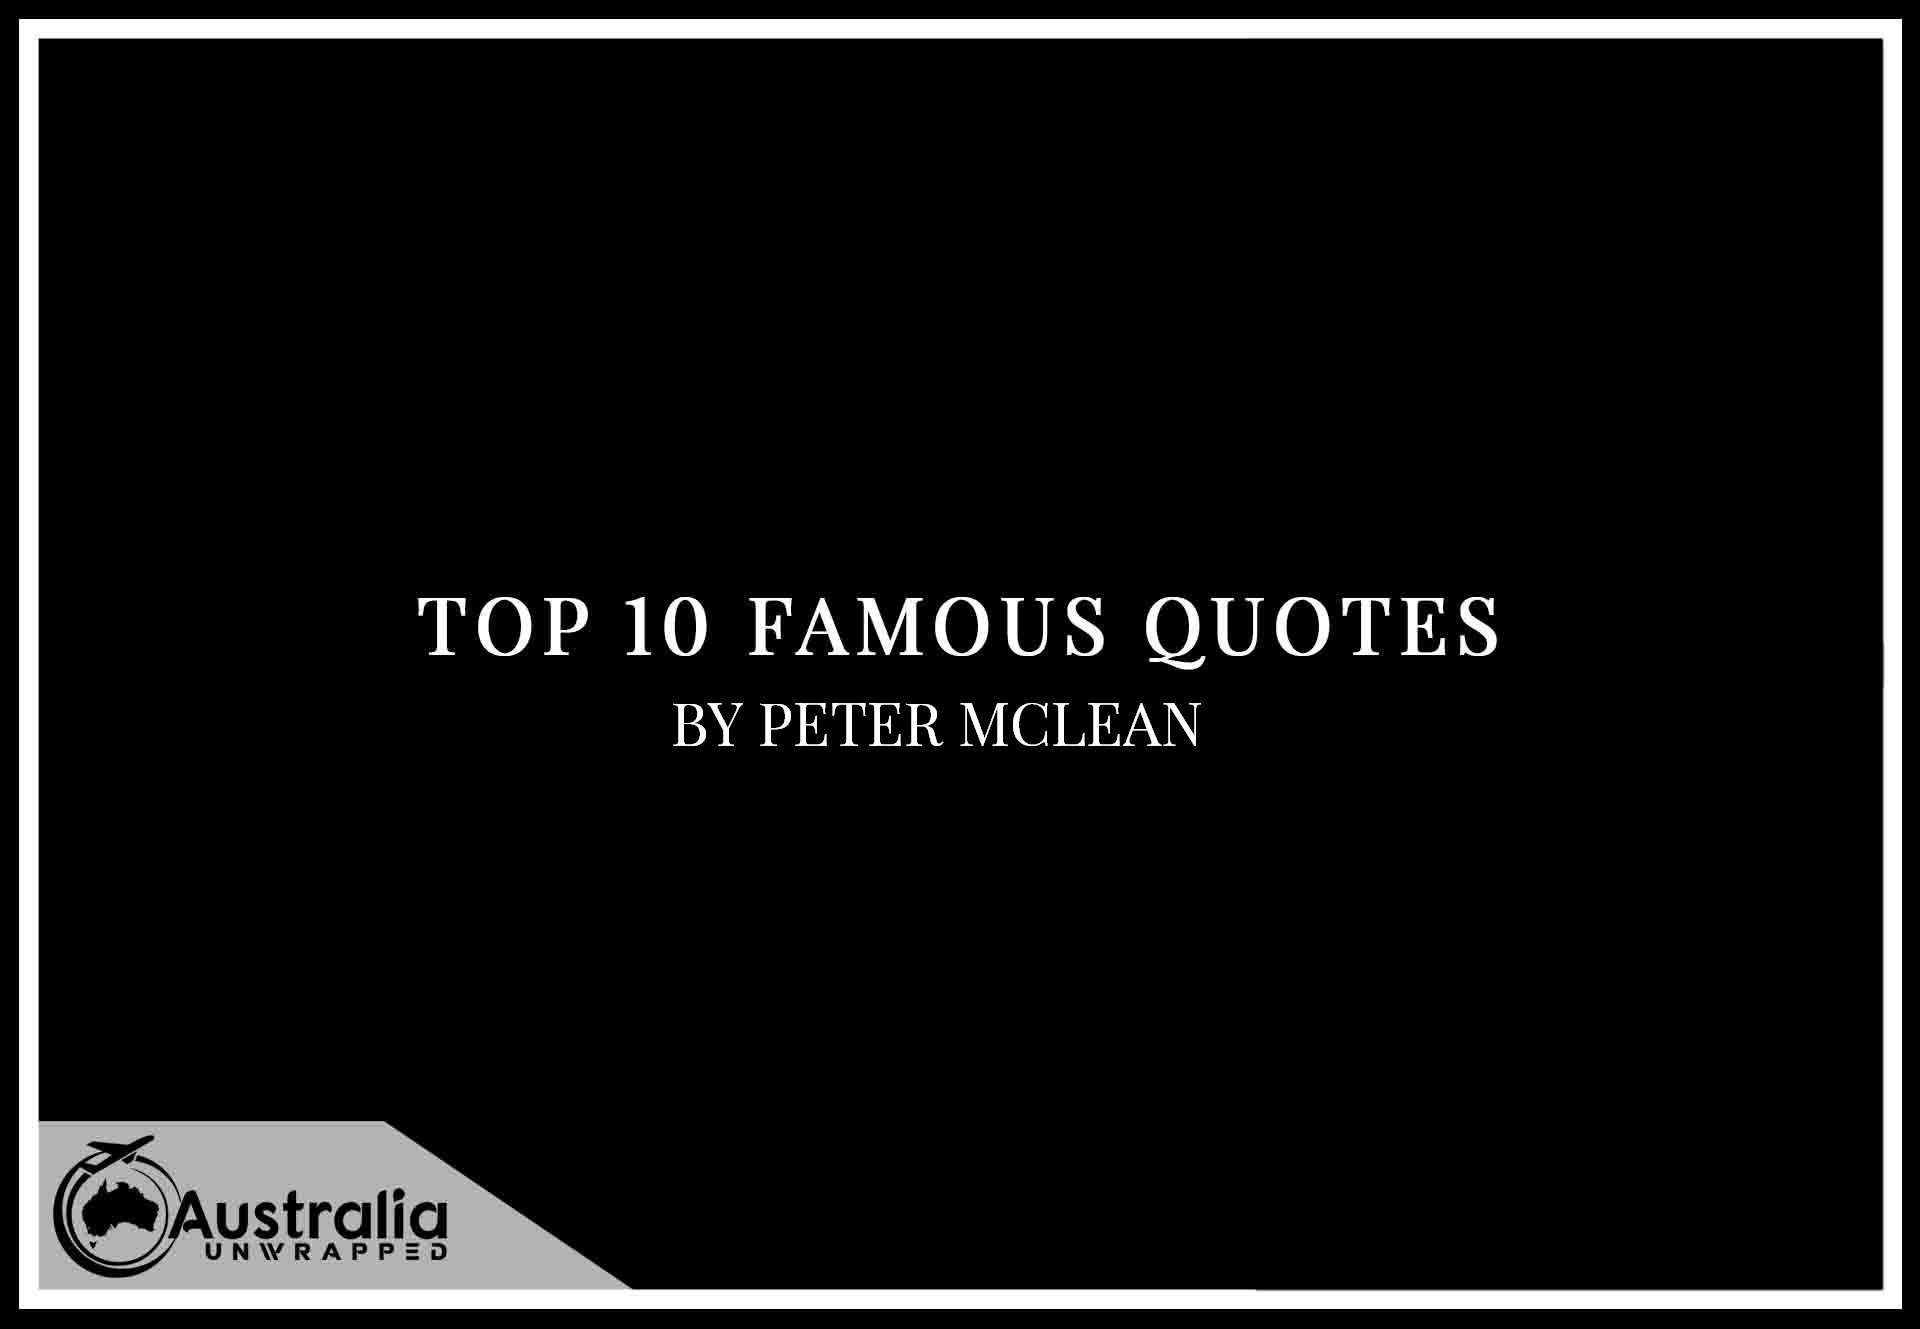 Top 10 Famous Quotes by Author Peter Mayle